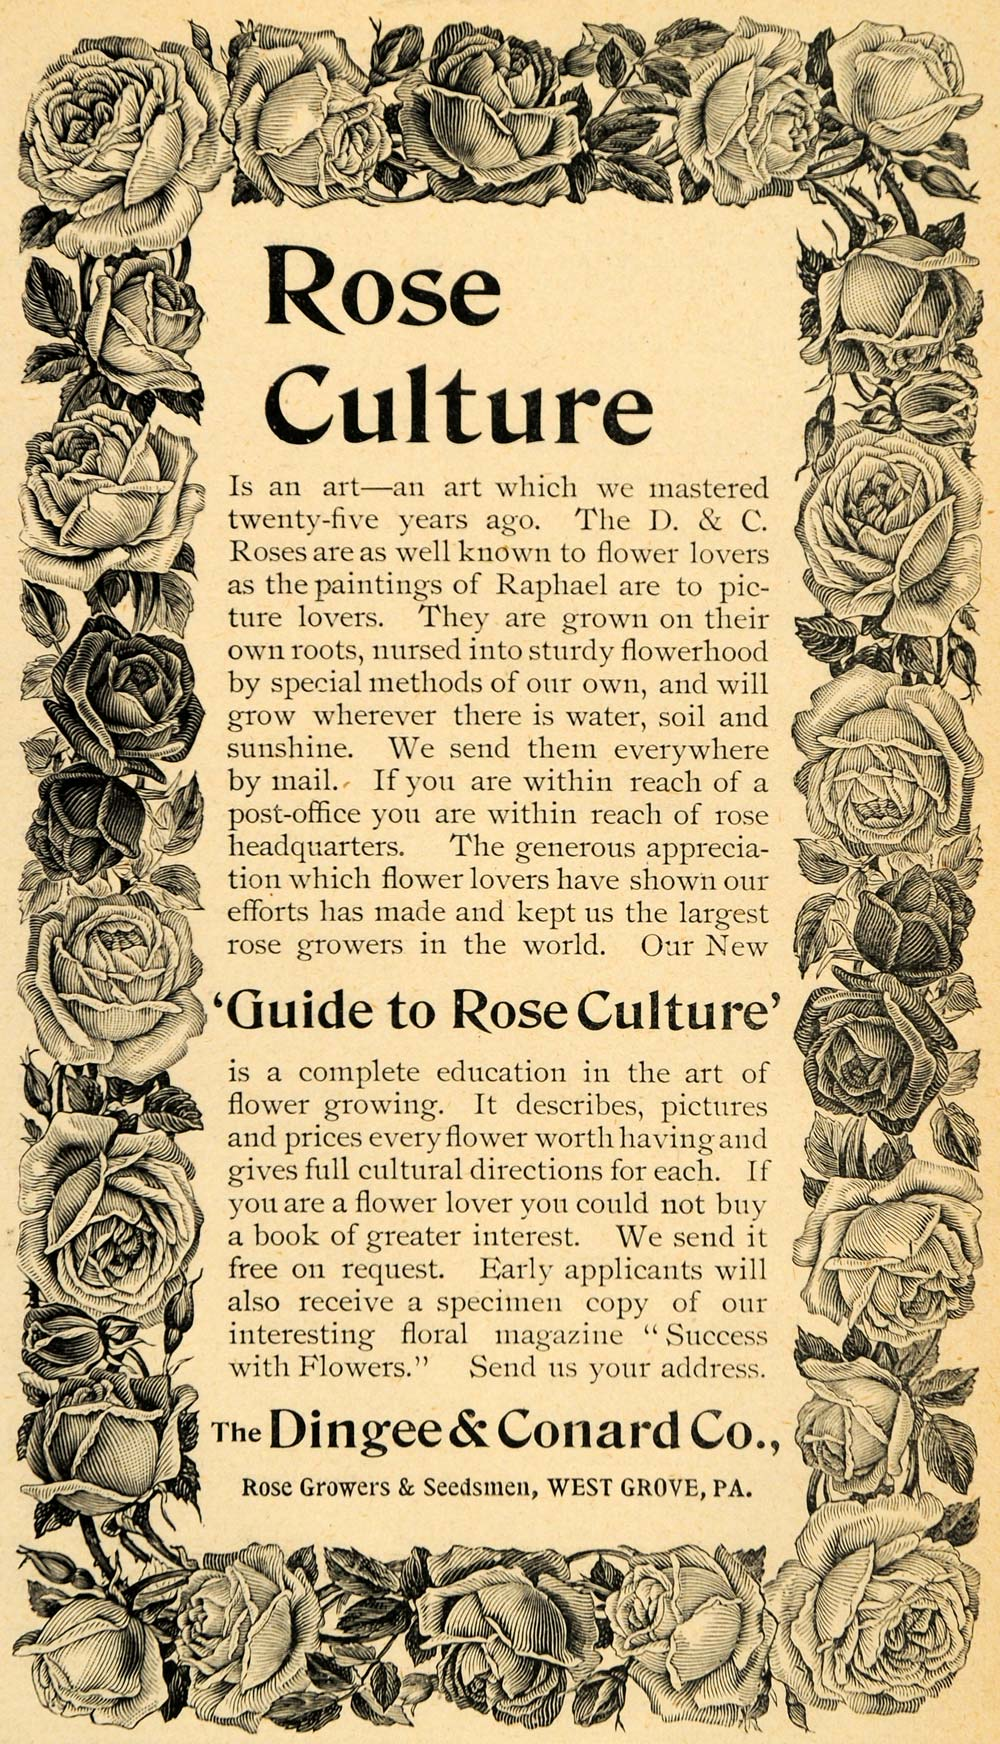 1893 Ad Dingee Conard Co. Rose Growers Culture Flowers Seedsman Seed LHJ4